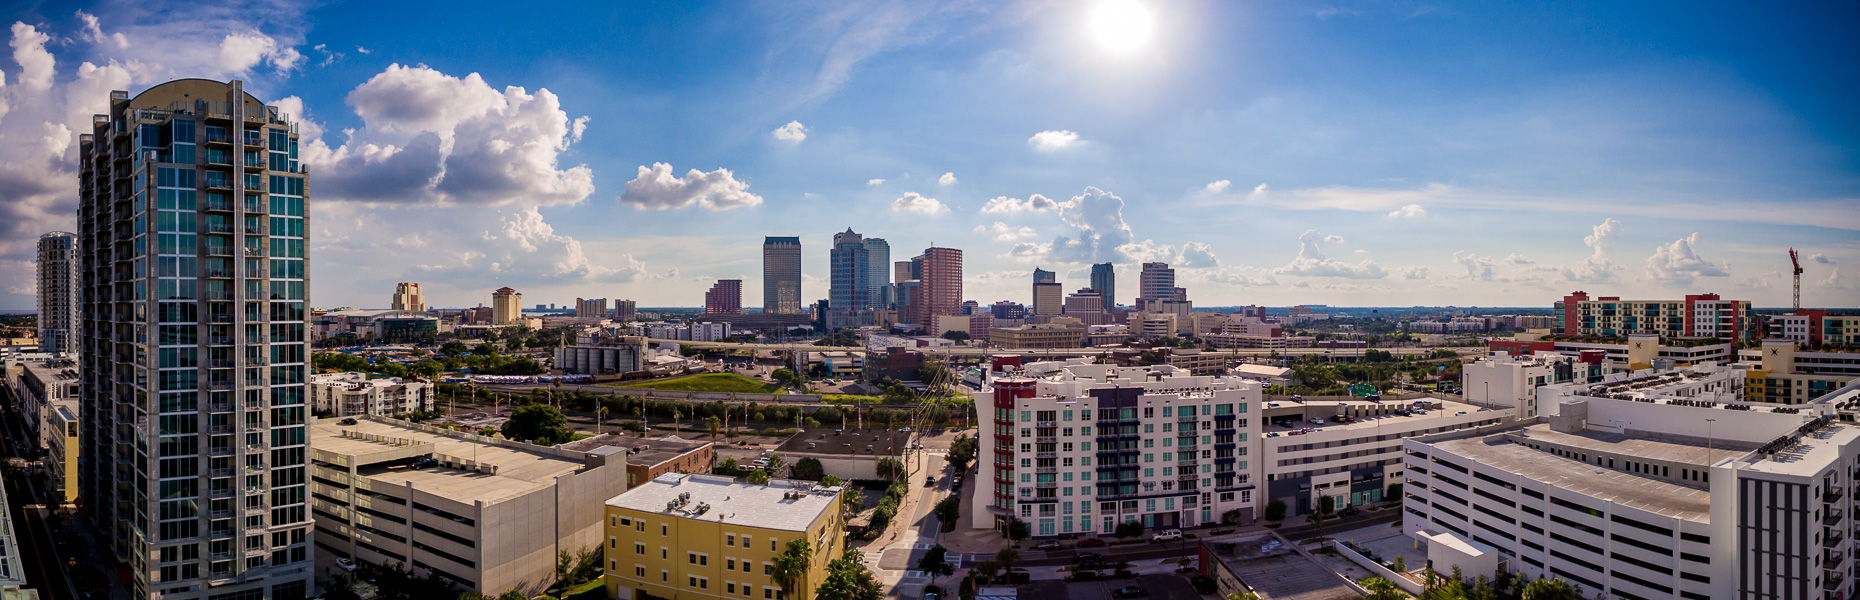 Drone photography of Tampa Florida